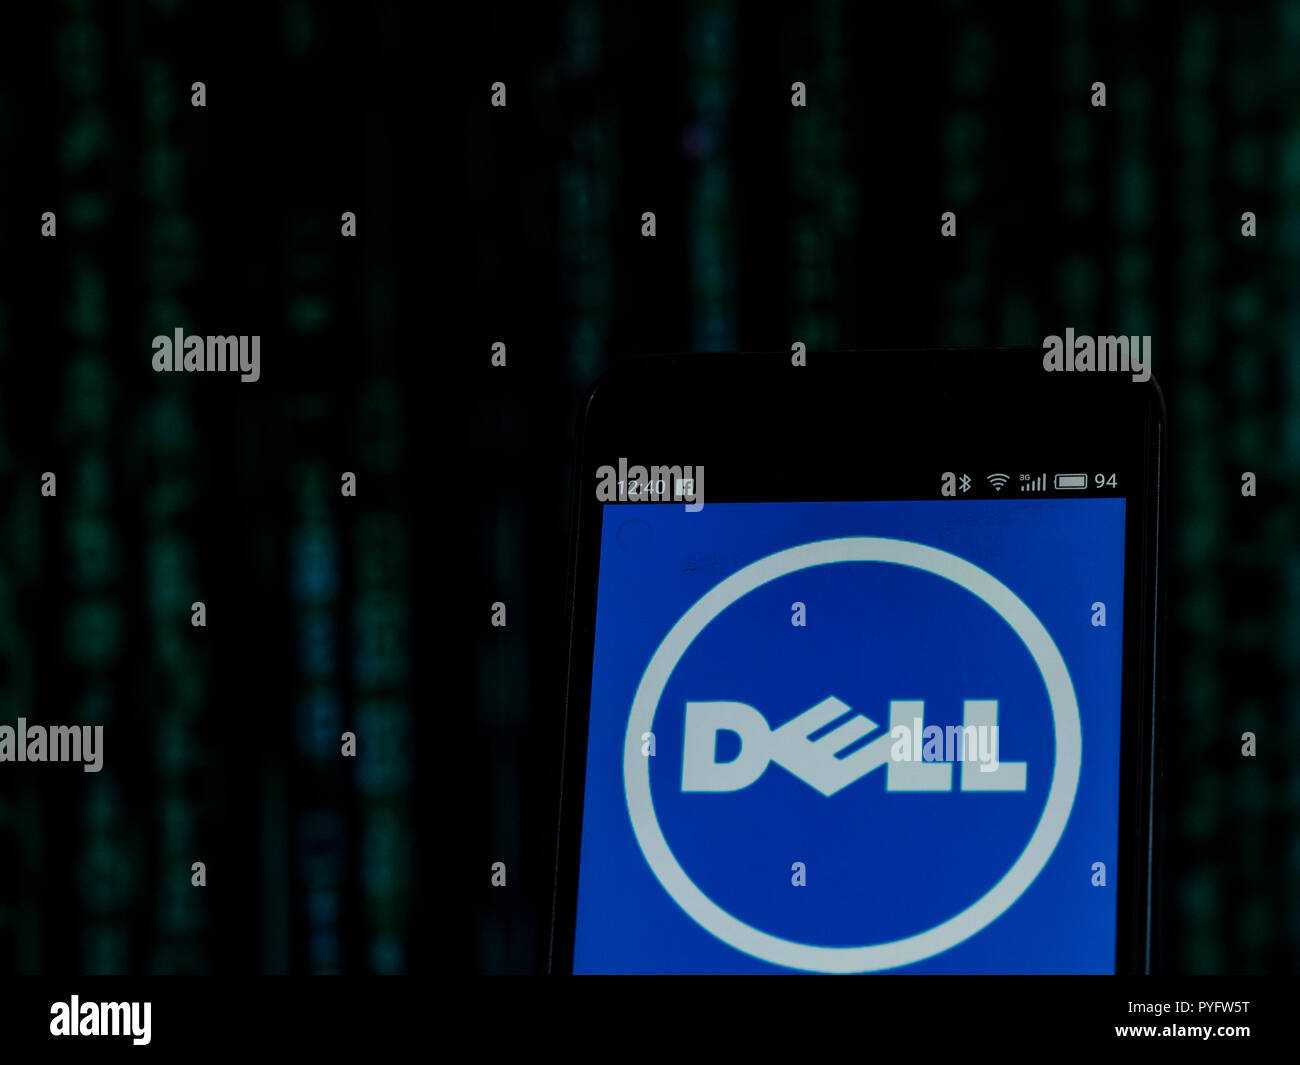 Dell Computers Stock Images, Royalty-Free Images & Vectors ...